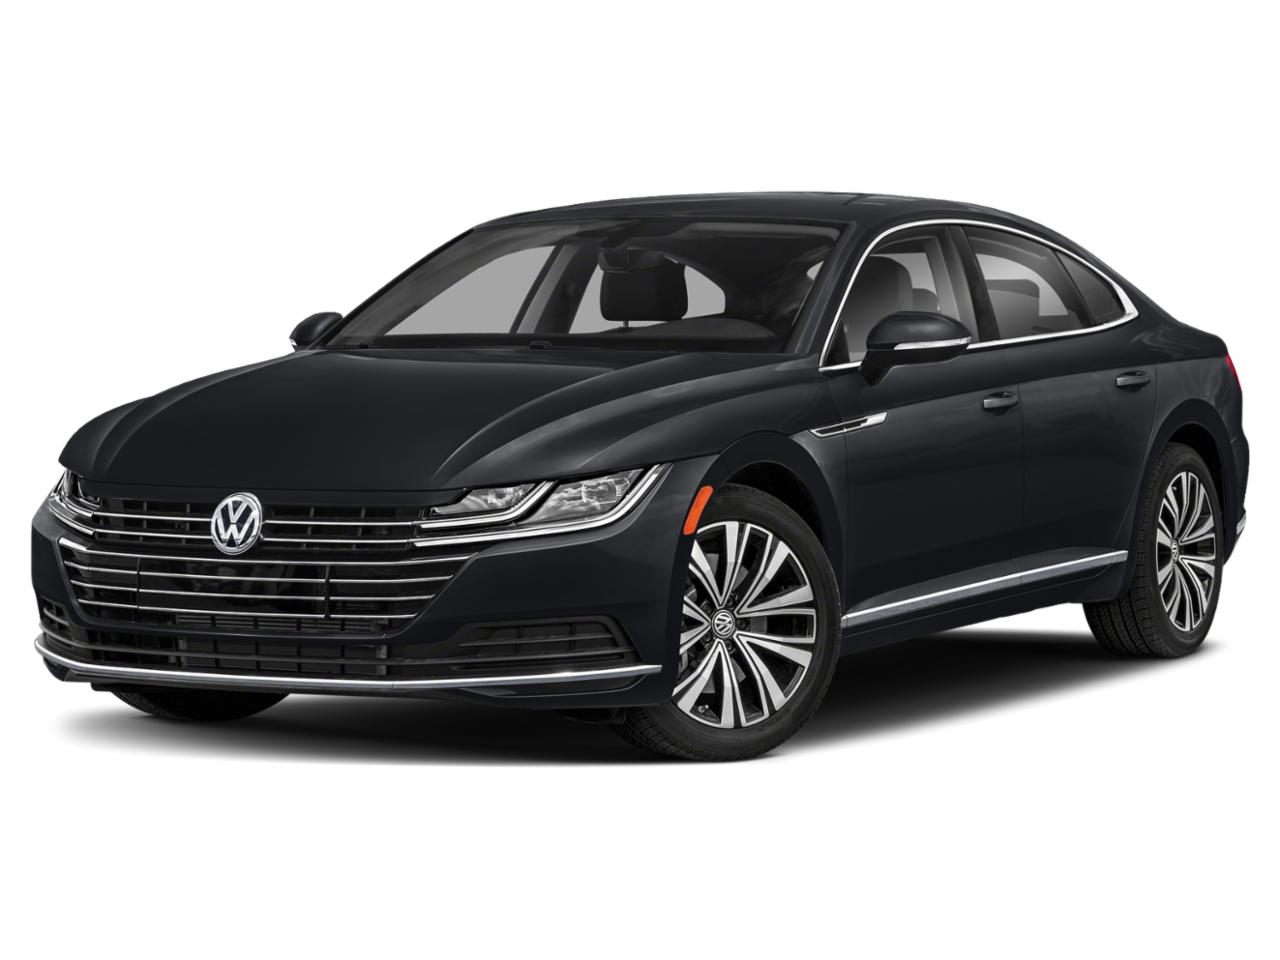 2020 Volkswagen Arteon Vehicle Photo in San Antonio, TX 78257